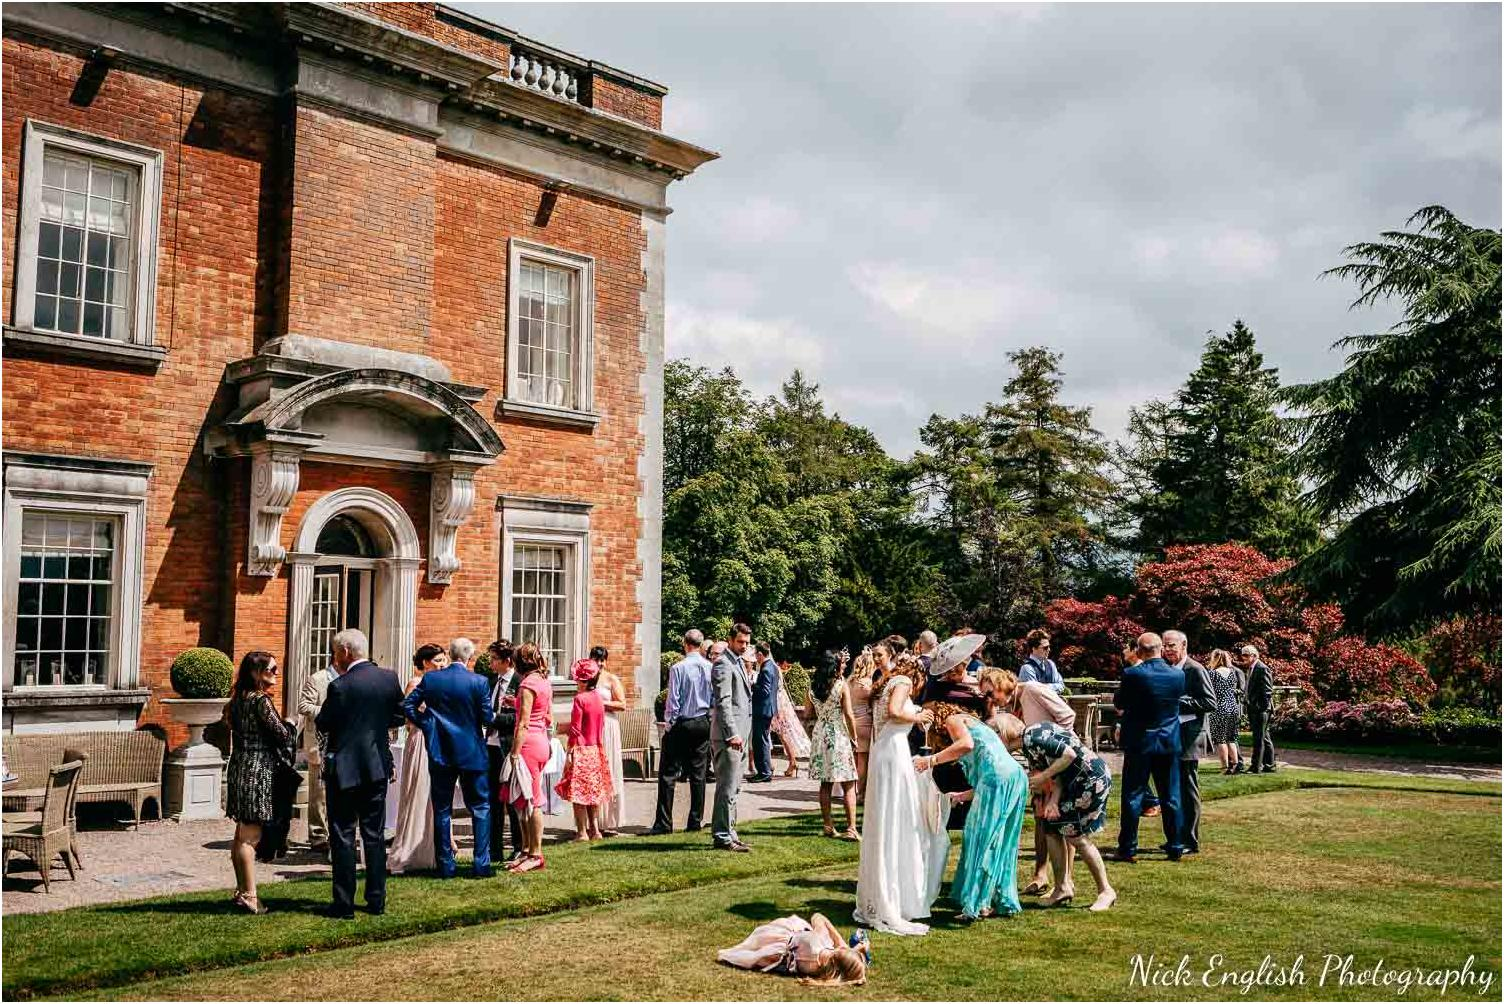 Eaves_Hall_Outdoor_Wedding_Photographs-138.jpg